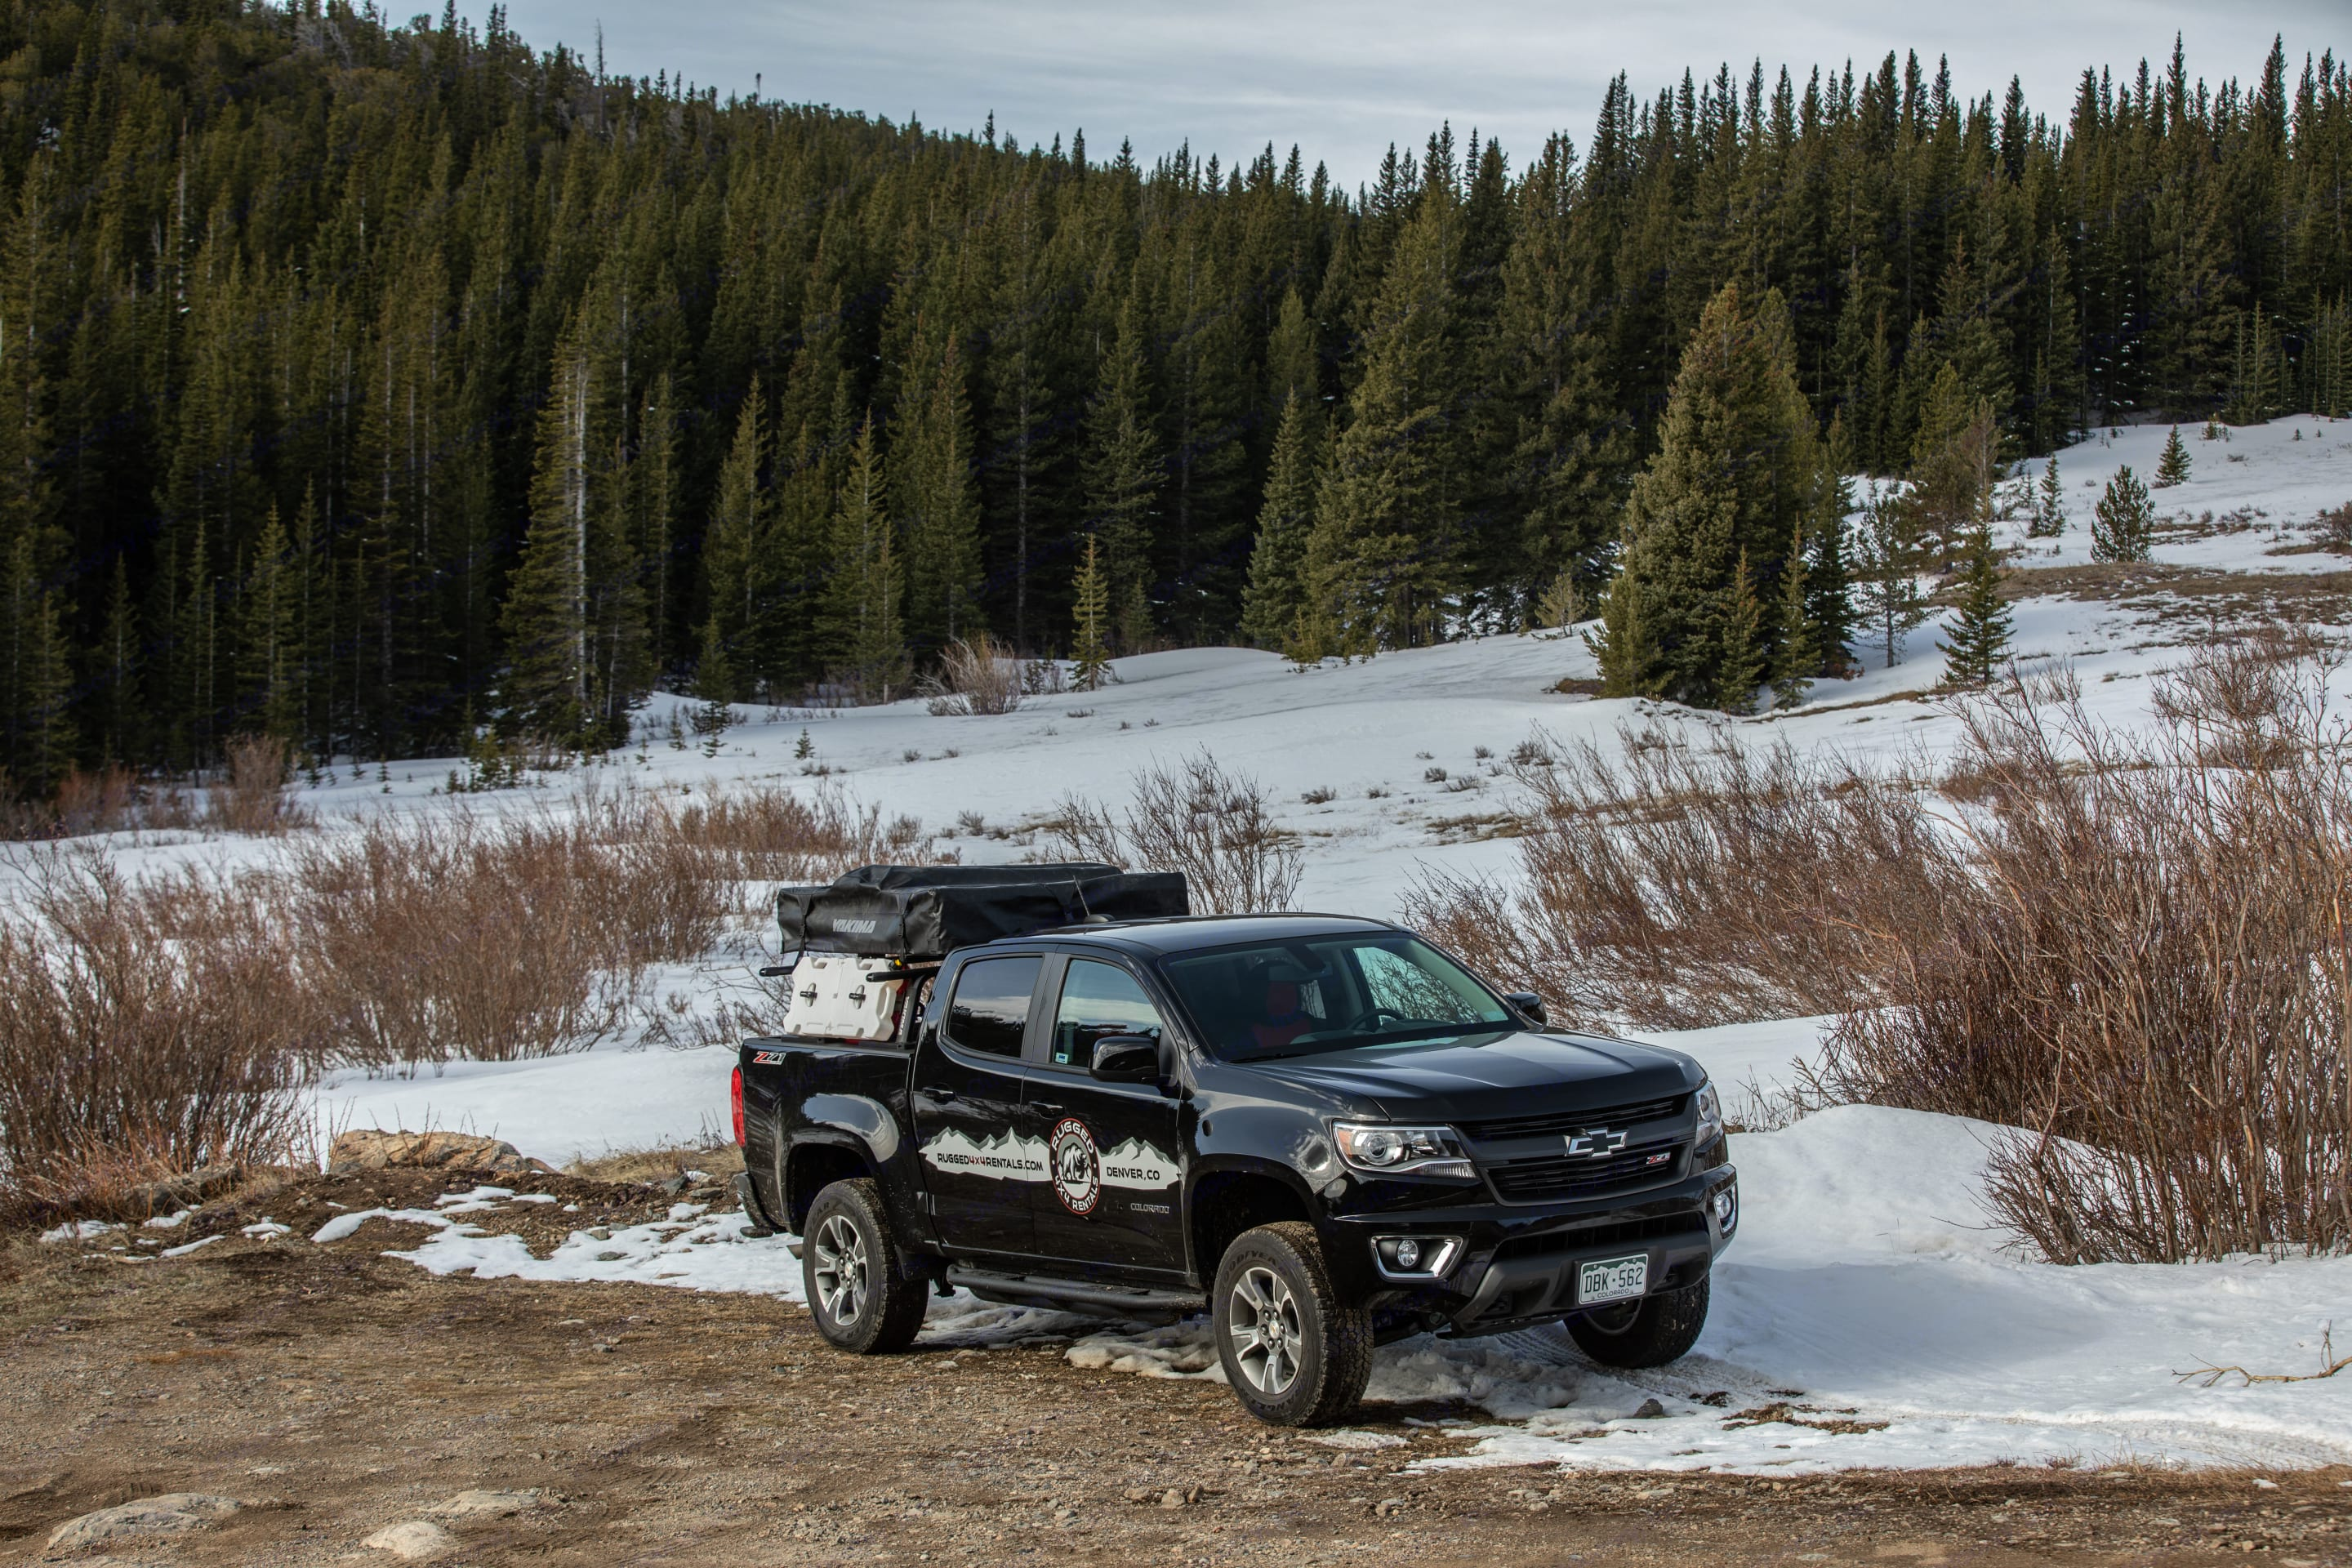 Adventure. It's the word we live by here at Rugged Van Rentals. Our desire is to spread that word and give people the means to live it out. In 2018, we introduced what no one else ever has, true 4x4 adventure van rentals capable of taking you and all your friends safely into the backcountry with all your gear. Now we are stepping up our game. We are adding overlanding trucks to our fleet!. Chevrolet Colorado 2019